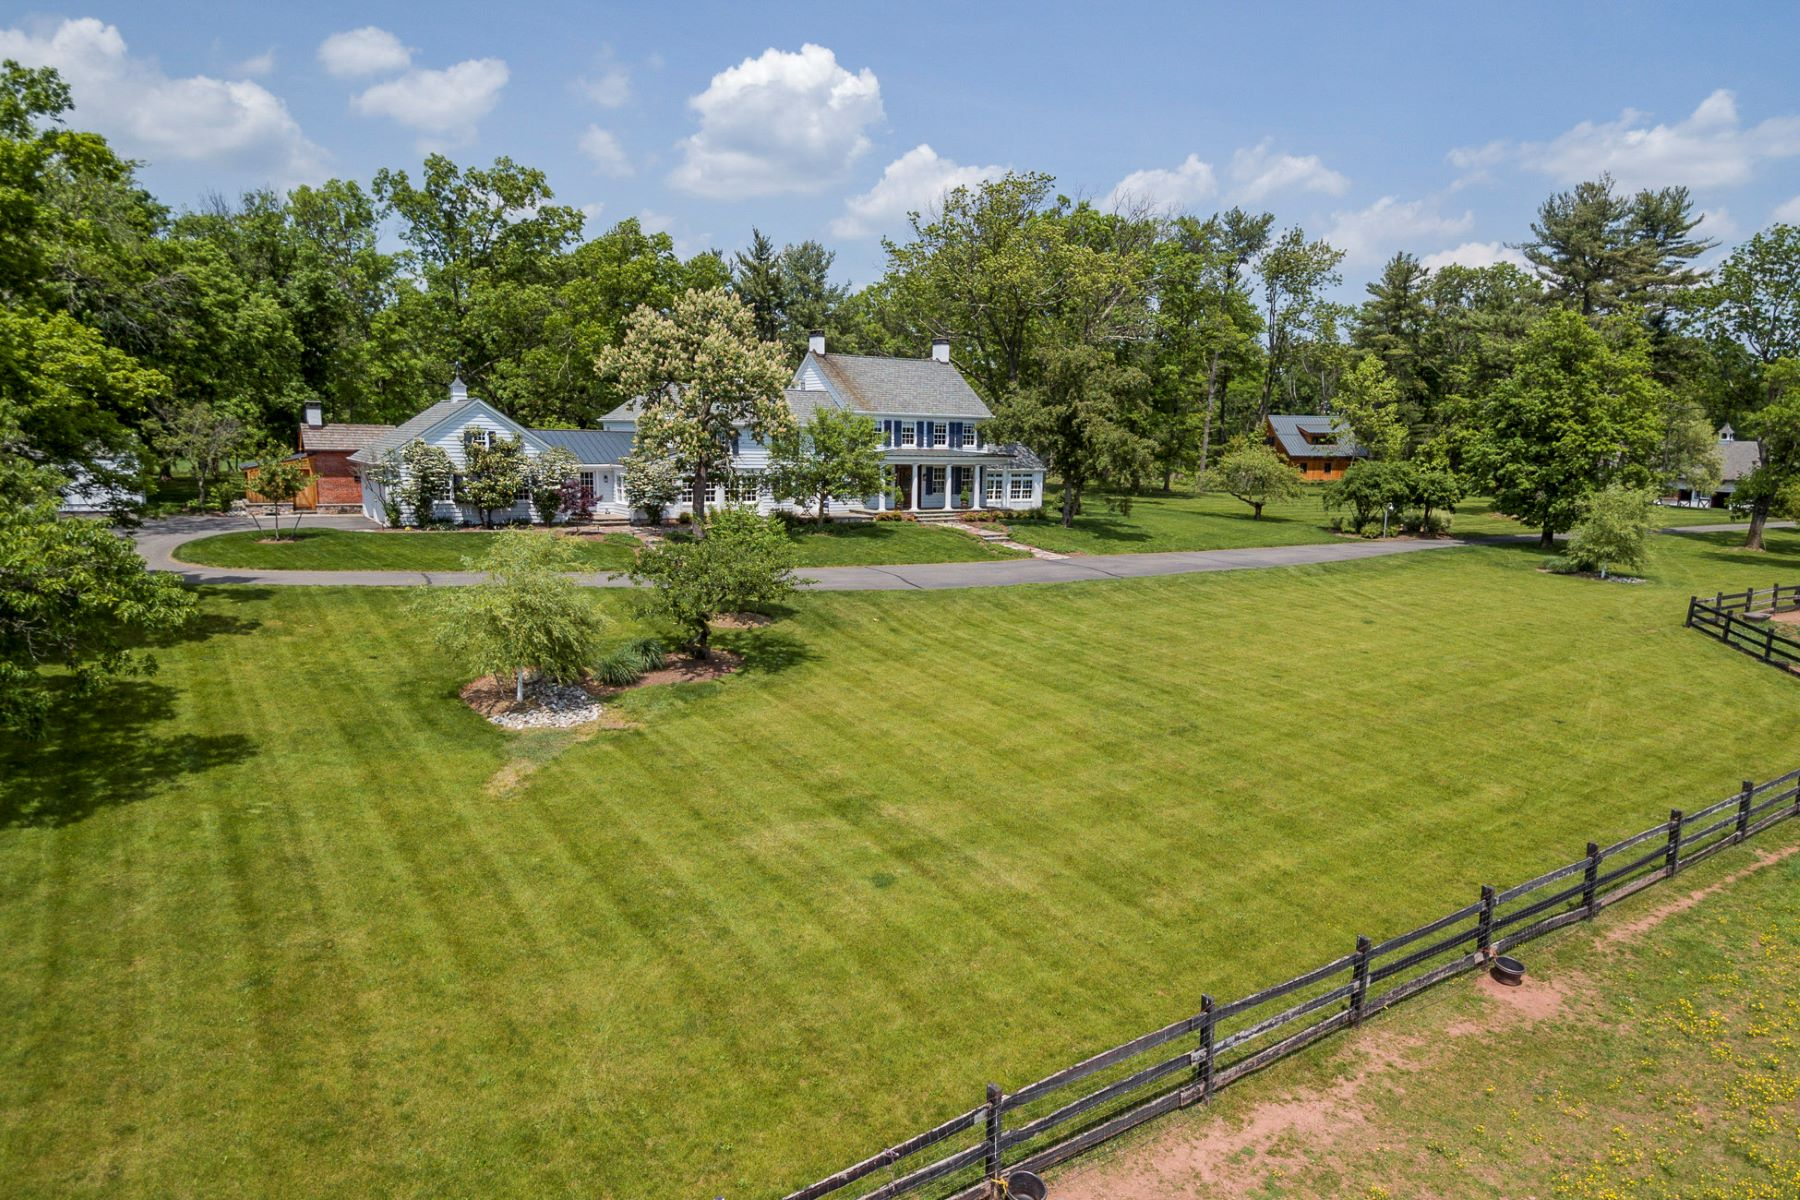 Single Family Home for Sale at Historic Farm Reimagined for the Modern Equestrian - Hopewell Township 266 Province Line Road Skillman, 08558 United States